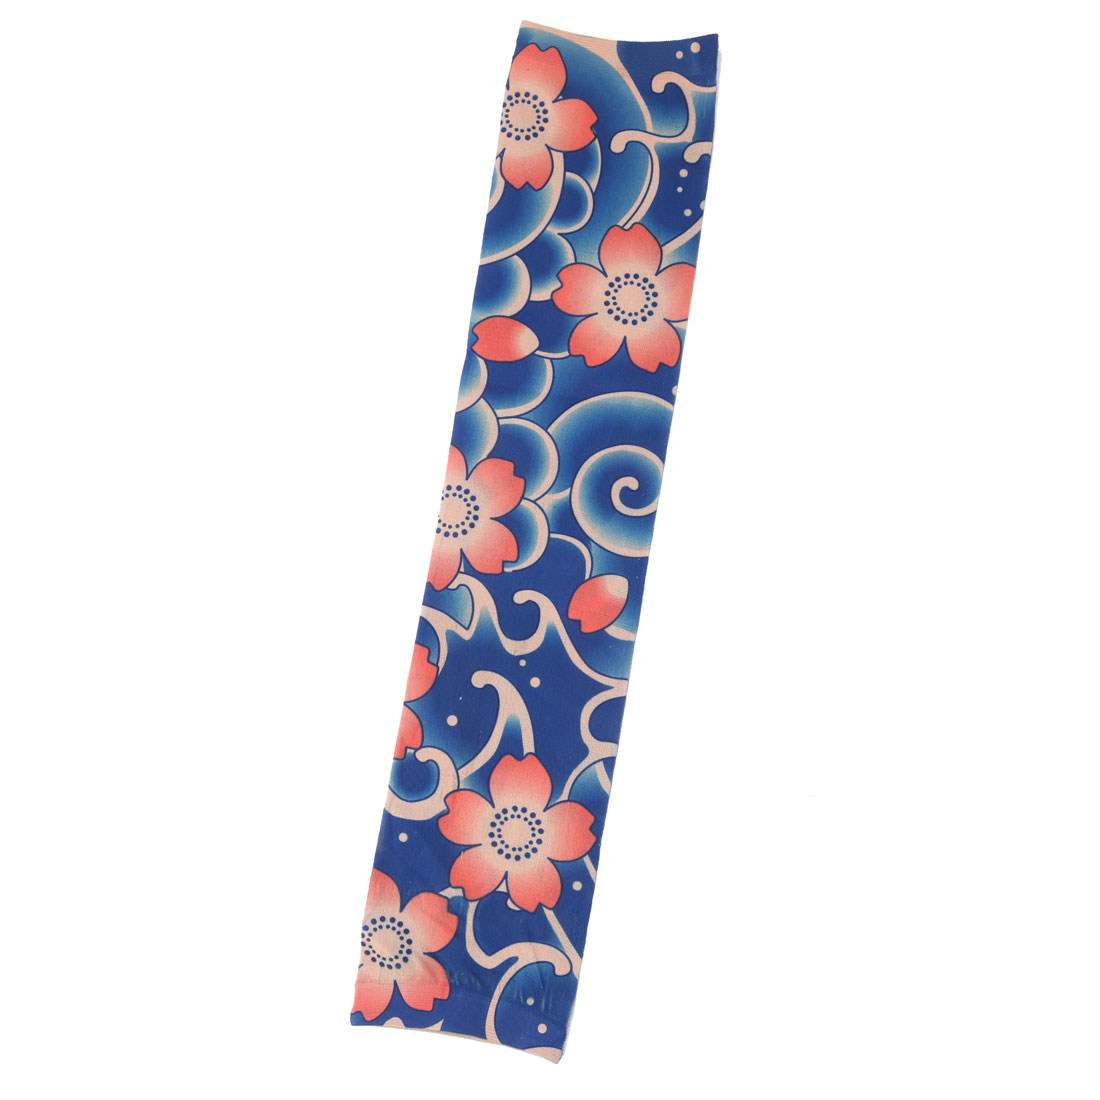 Nylon Flower Print Riding Cycling Running Stretchy Arm Cover Protector Sleeve Oversleeve